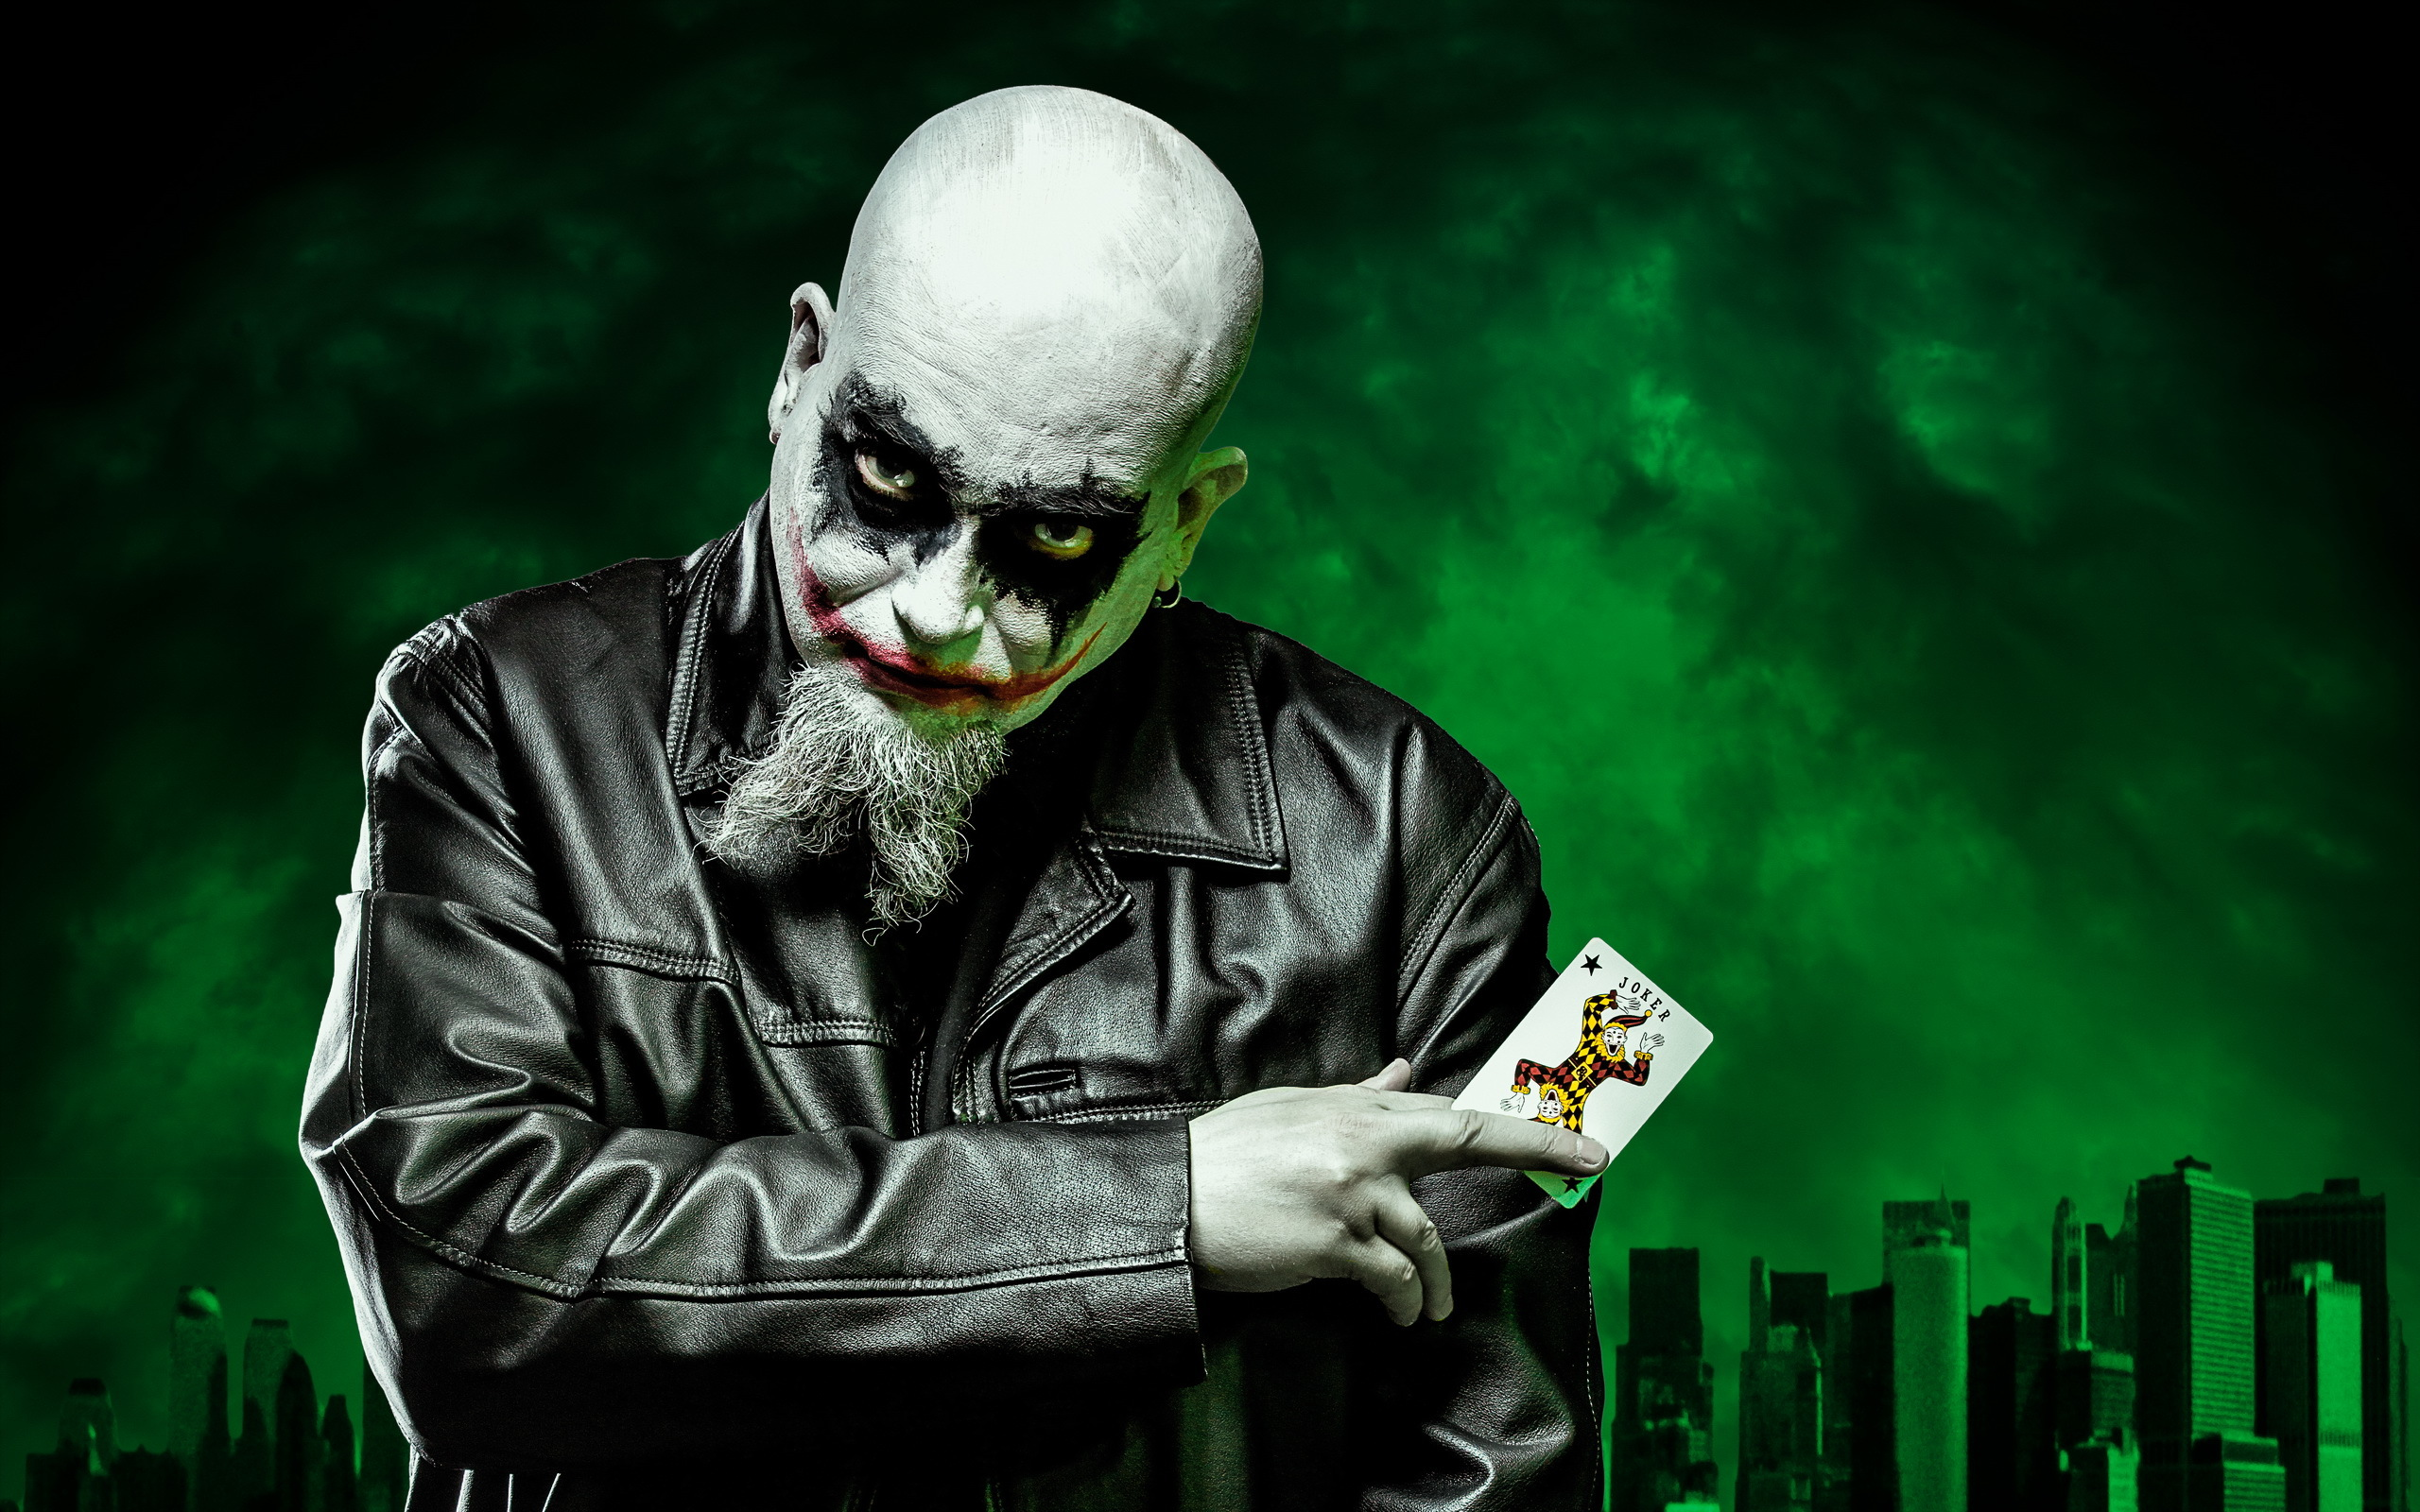 Joker dark self portrait batman clown evil wallpaper 2560x1600 2560x1600